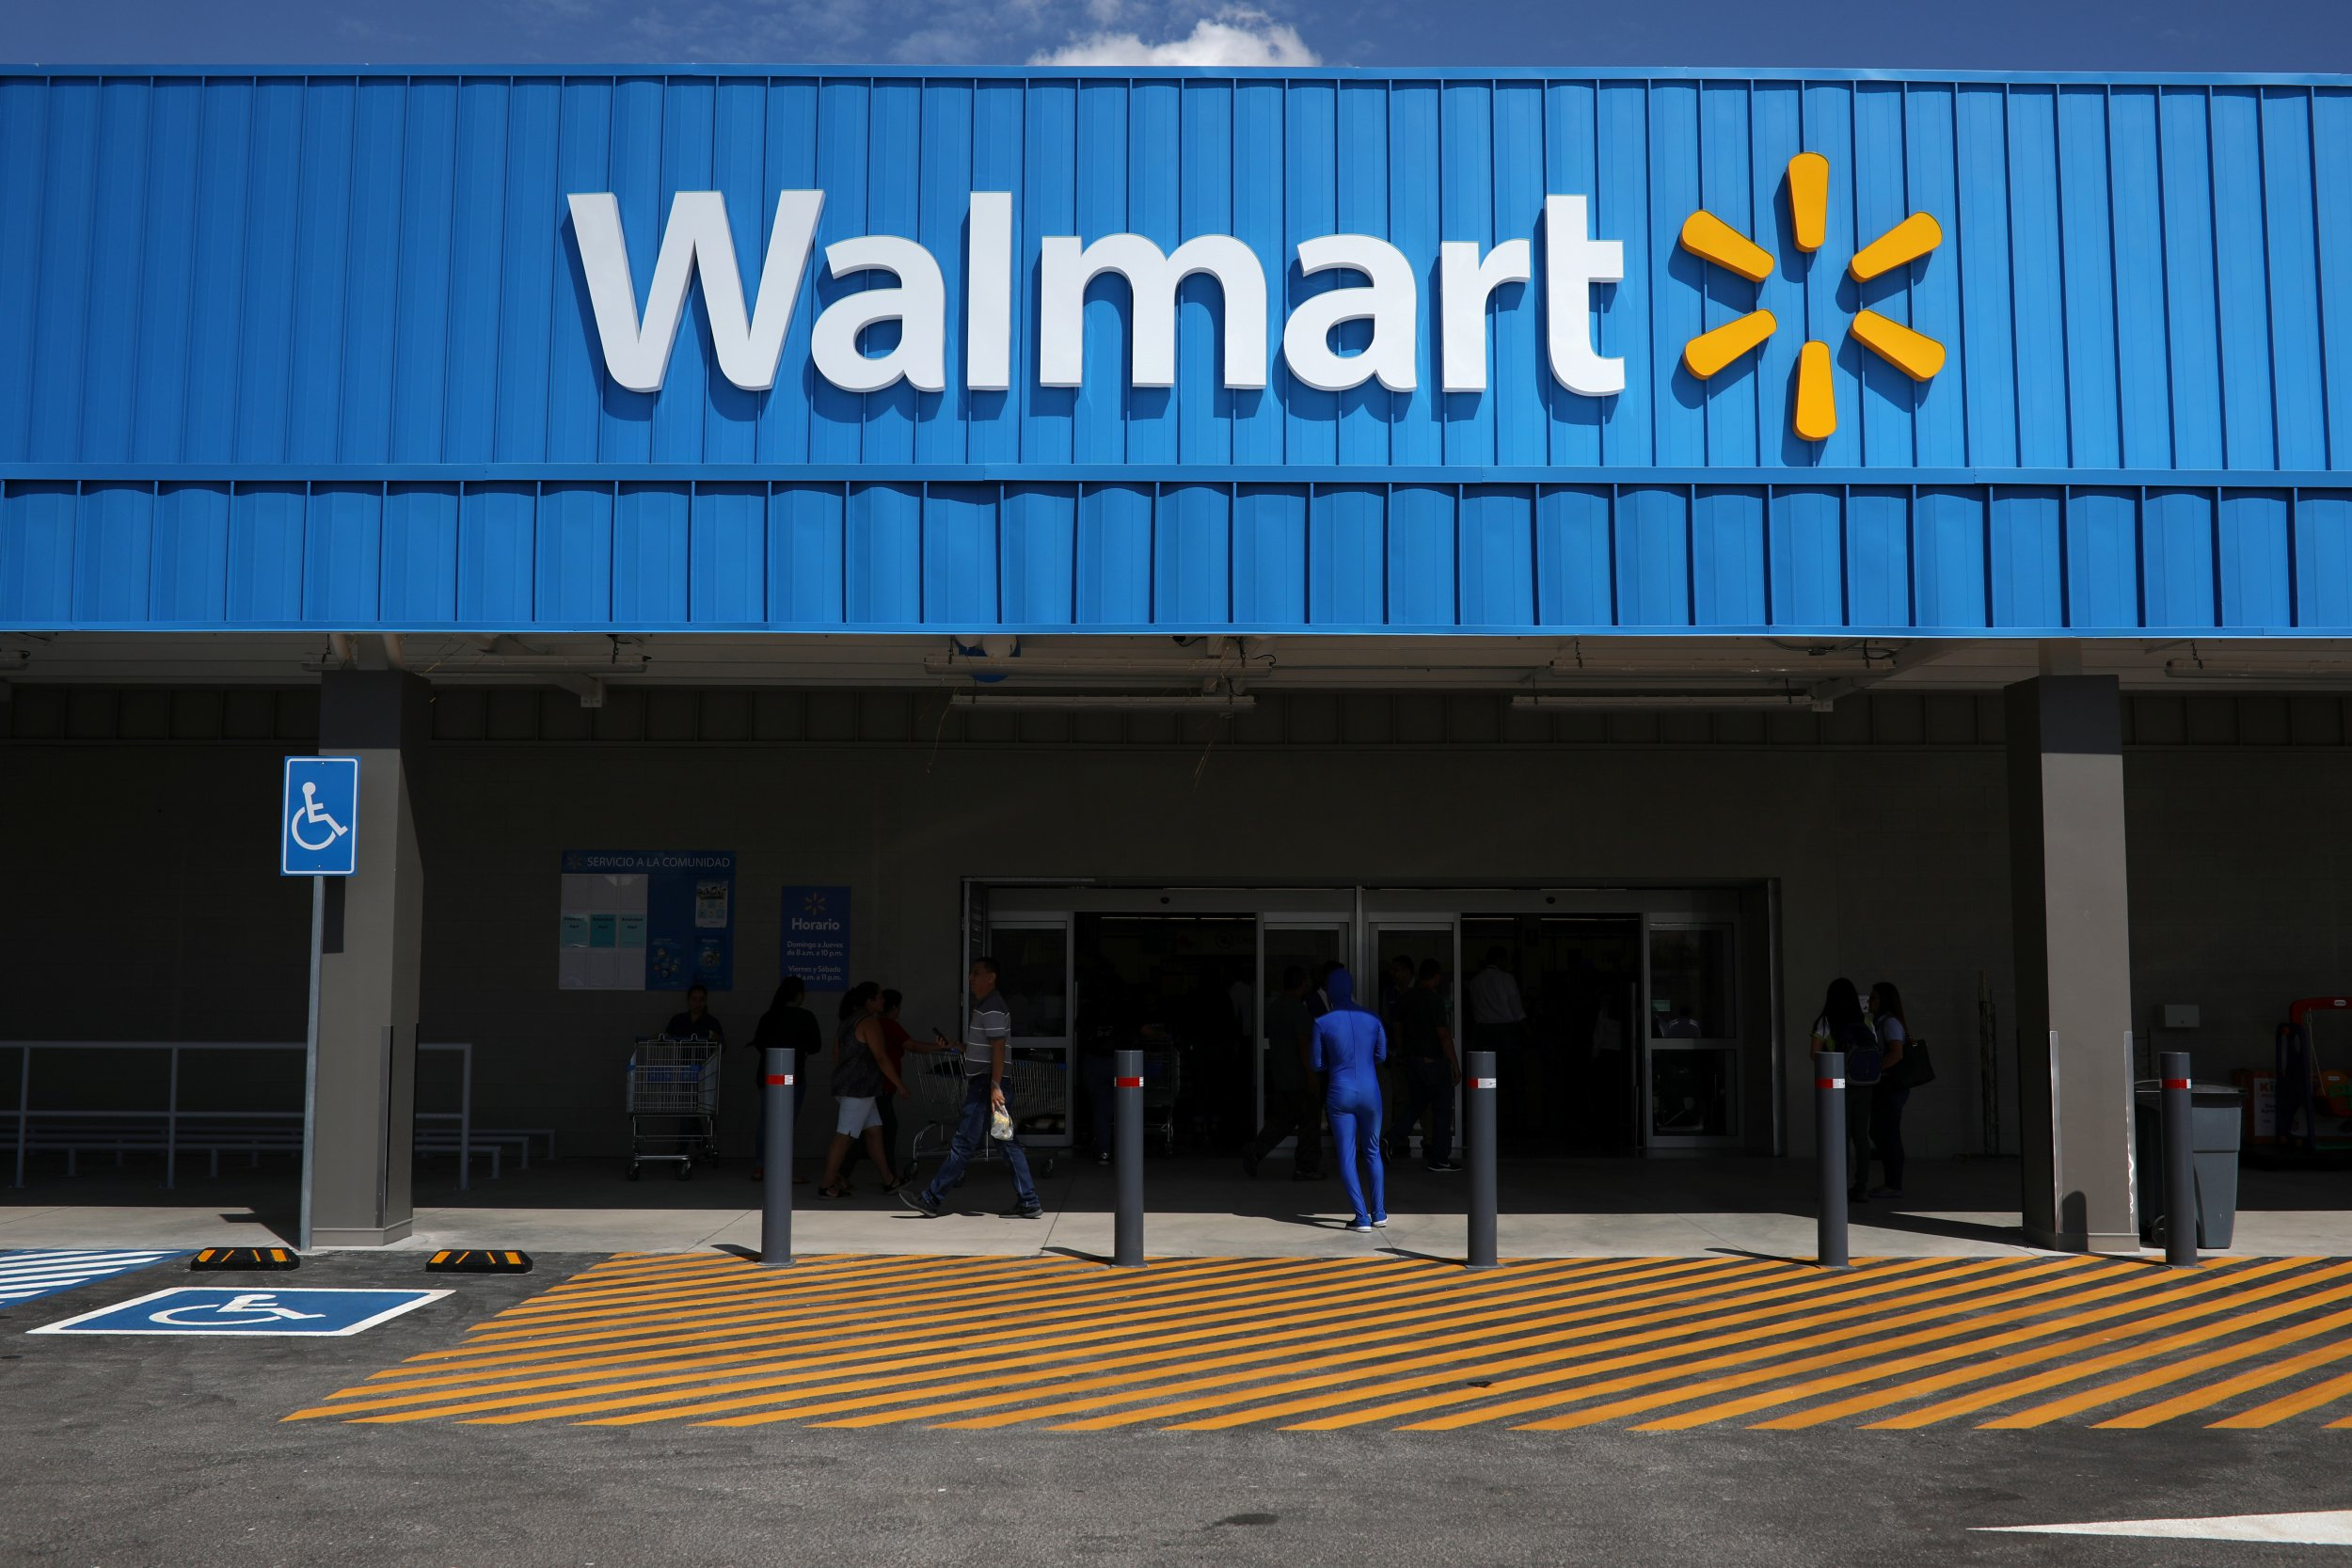 Walmart Raises Price of Plus-Sized Clothing, Citing Production Costs | Newsweek